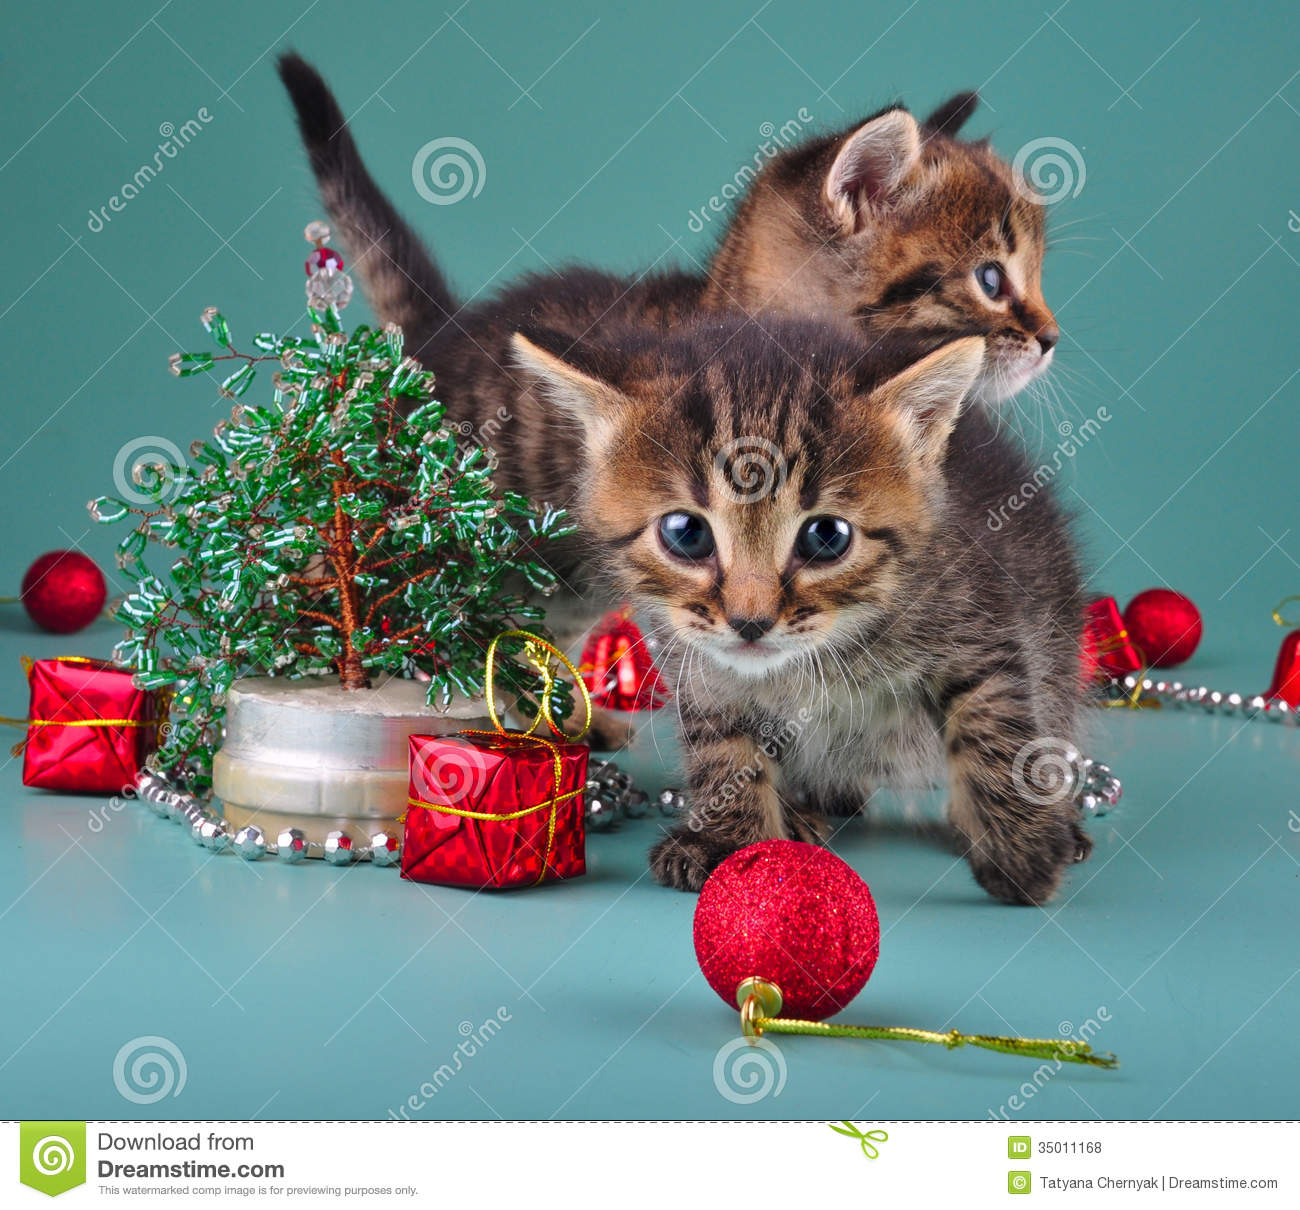 Funny Little Kittens With Handmade Christmas Tree And Balls Royalty ...